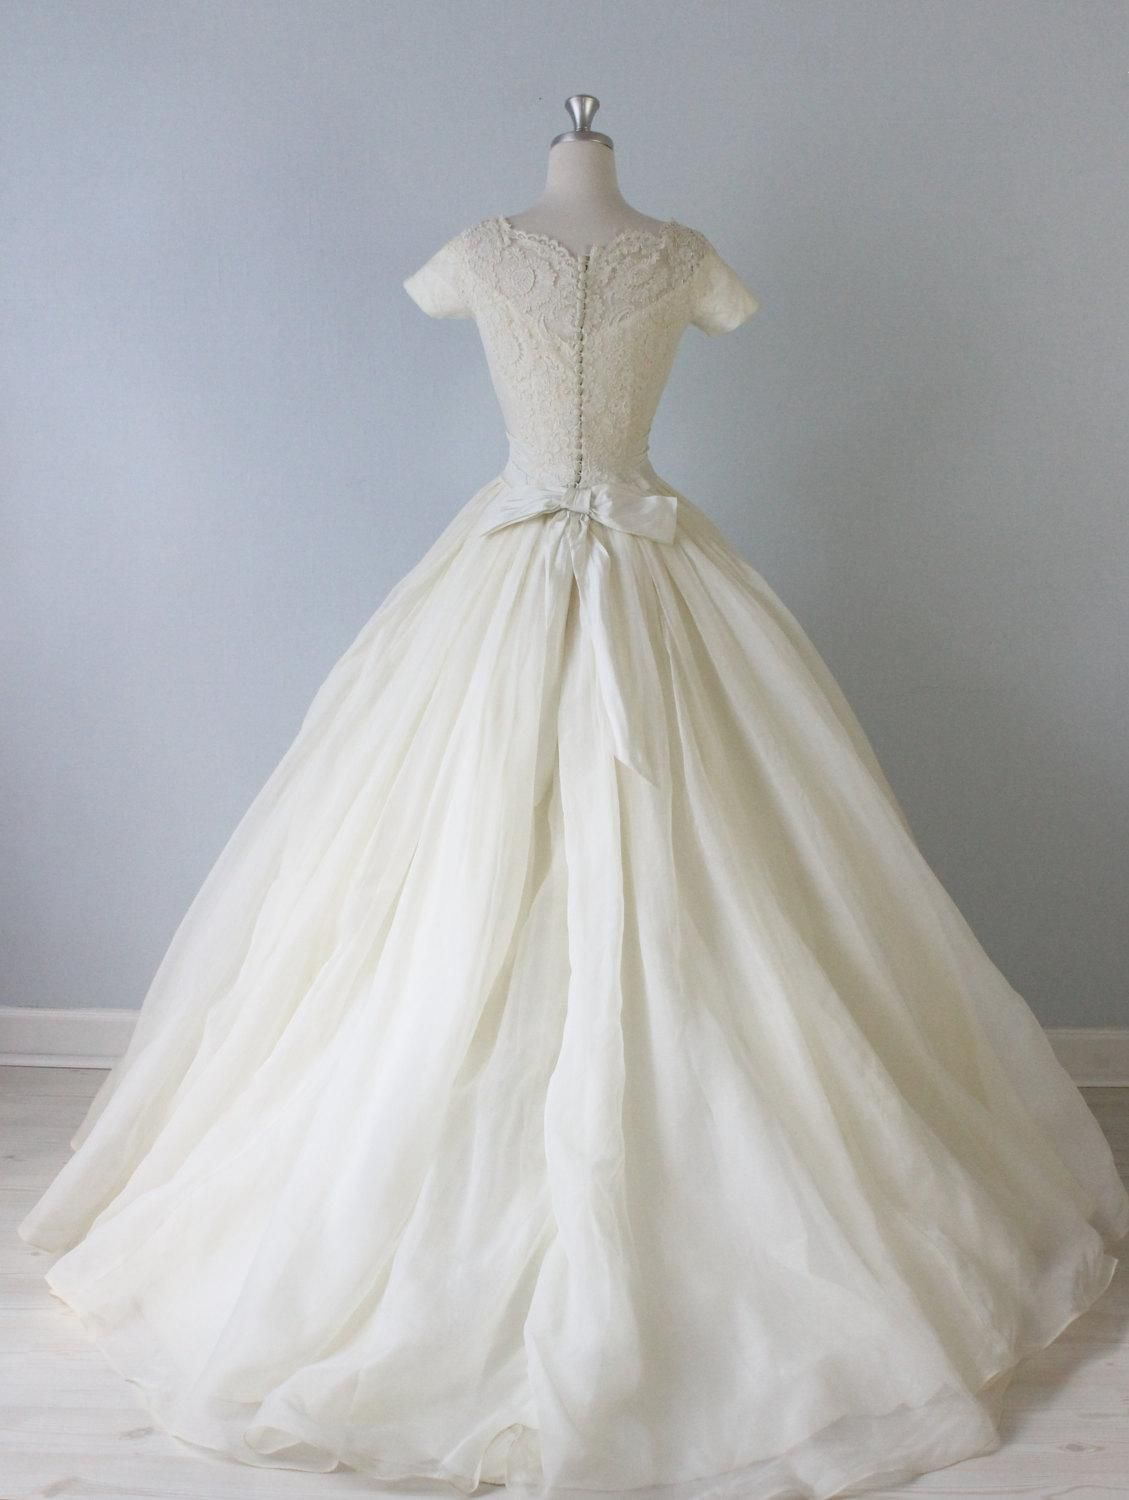 Vintage 1950s Ballgown Wedding Dress from The Vintage